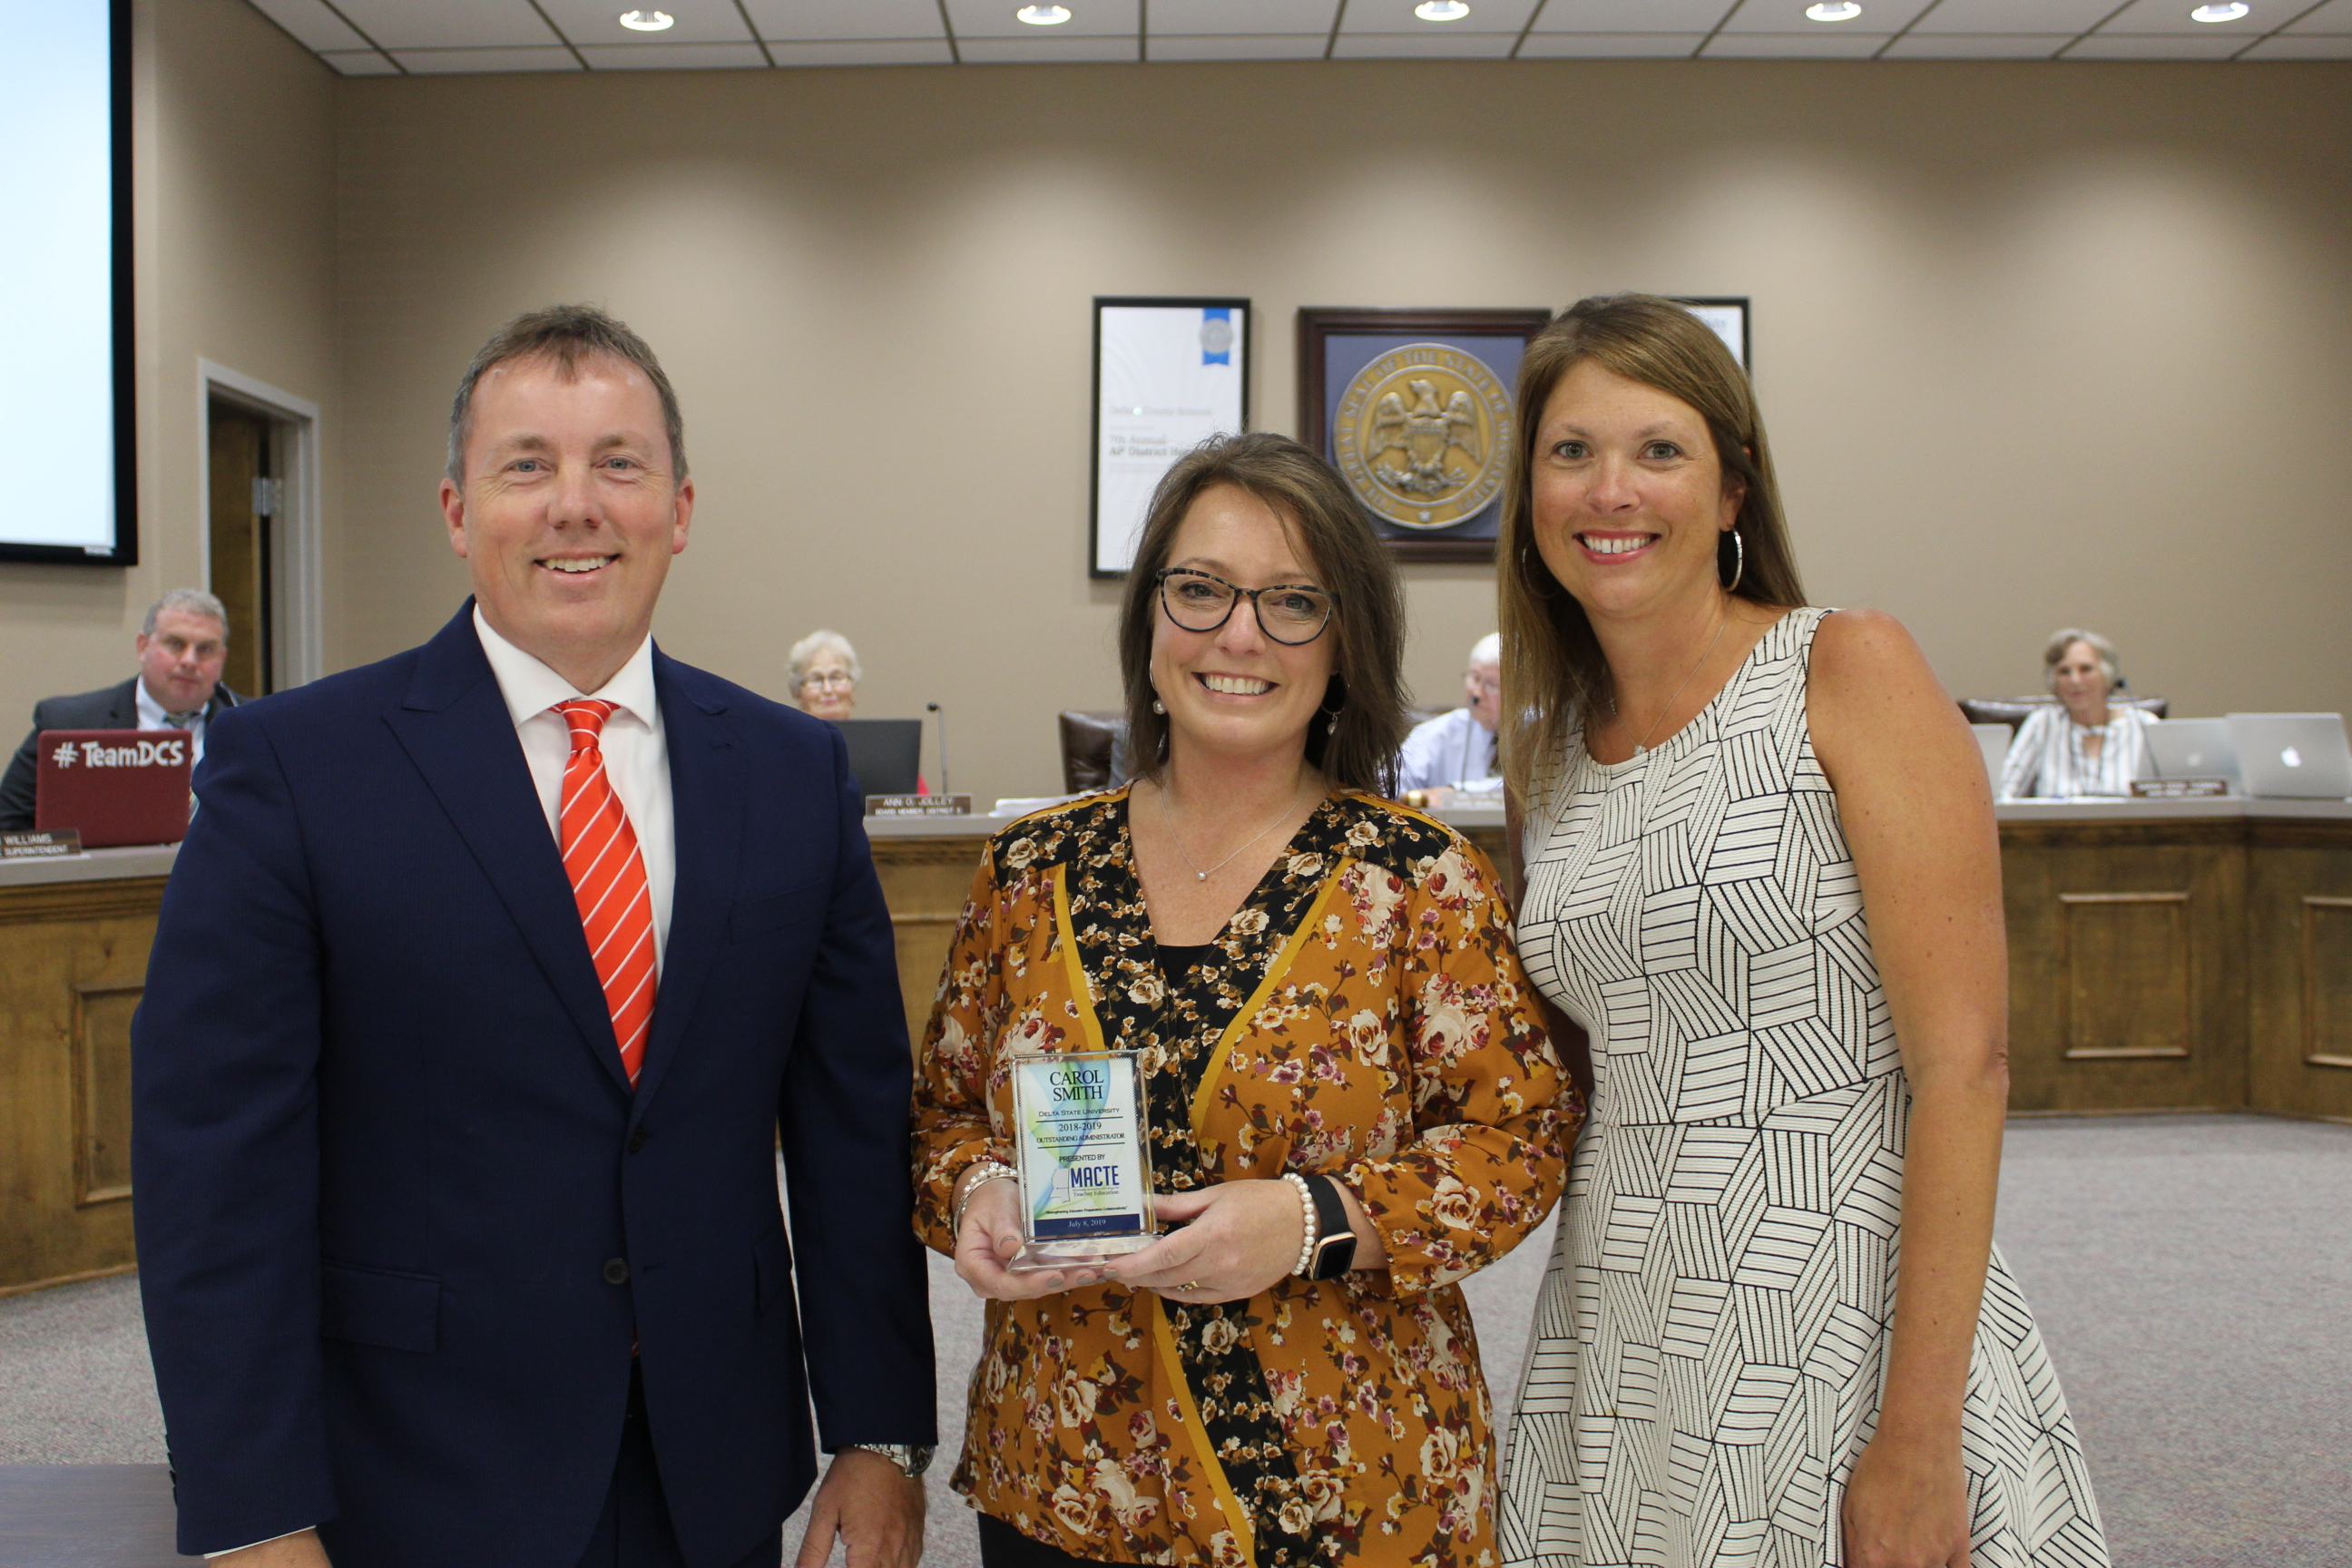 Supt. Cory Uselton, Principal Carol Smith, and Executive Director of Elementary Education Amanda Samples